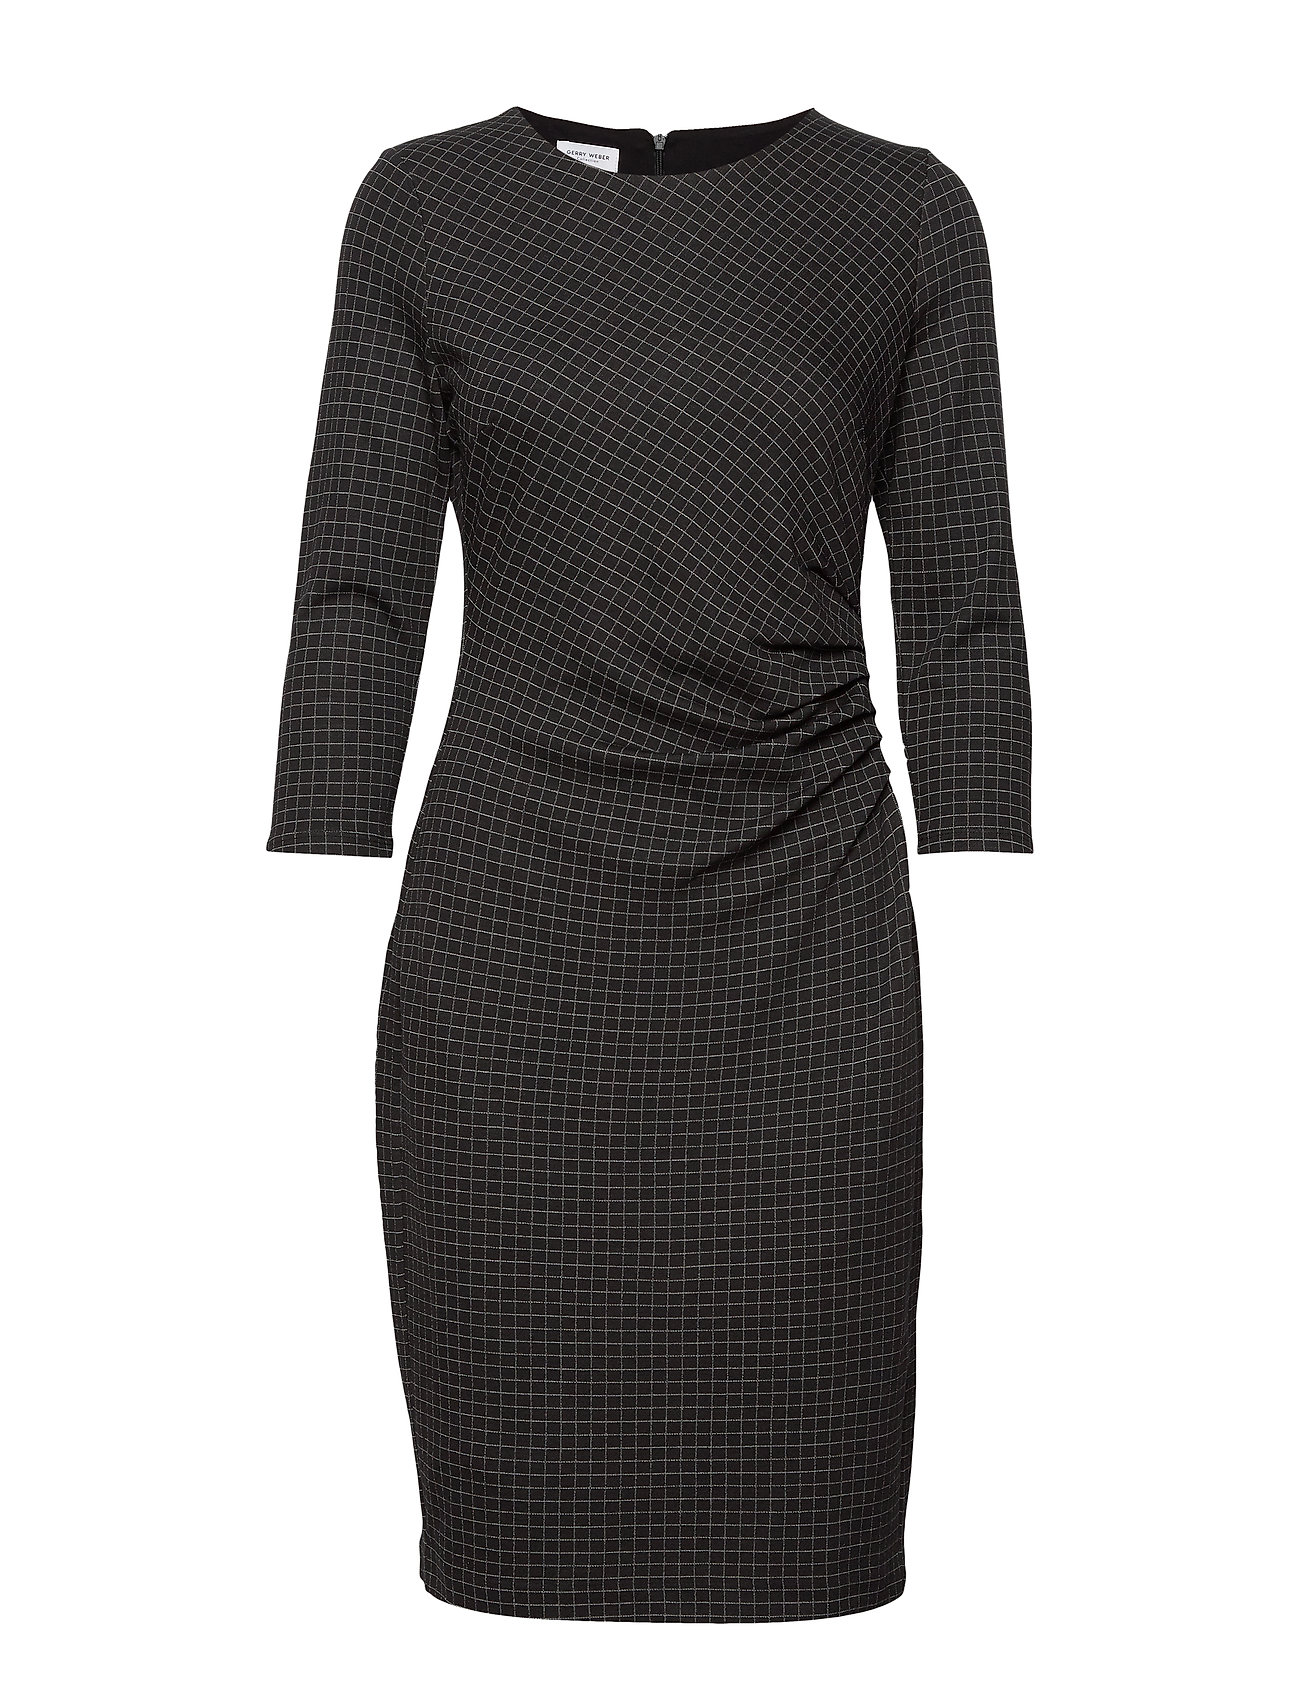 Gerry Weber DRESS KNITTED FABRIC - BLACK/ MARZIPAN